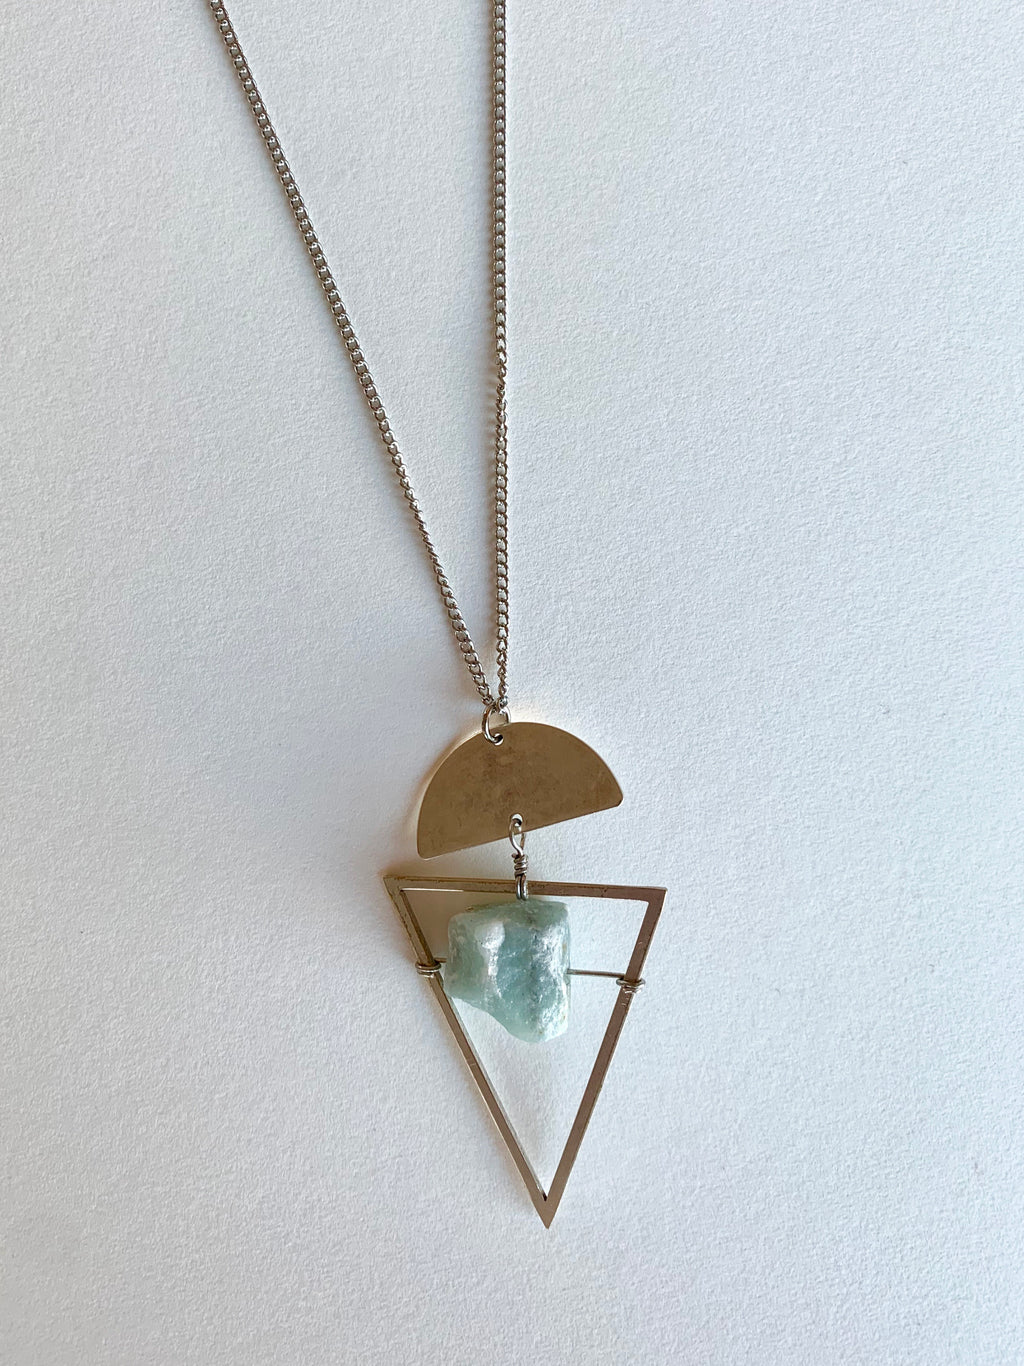 Rough Amazonite Necklace in Gold